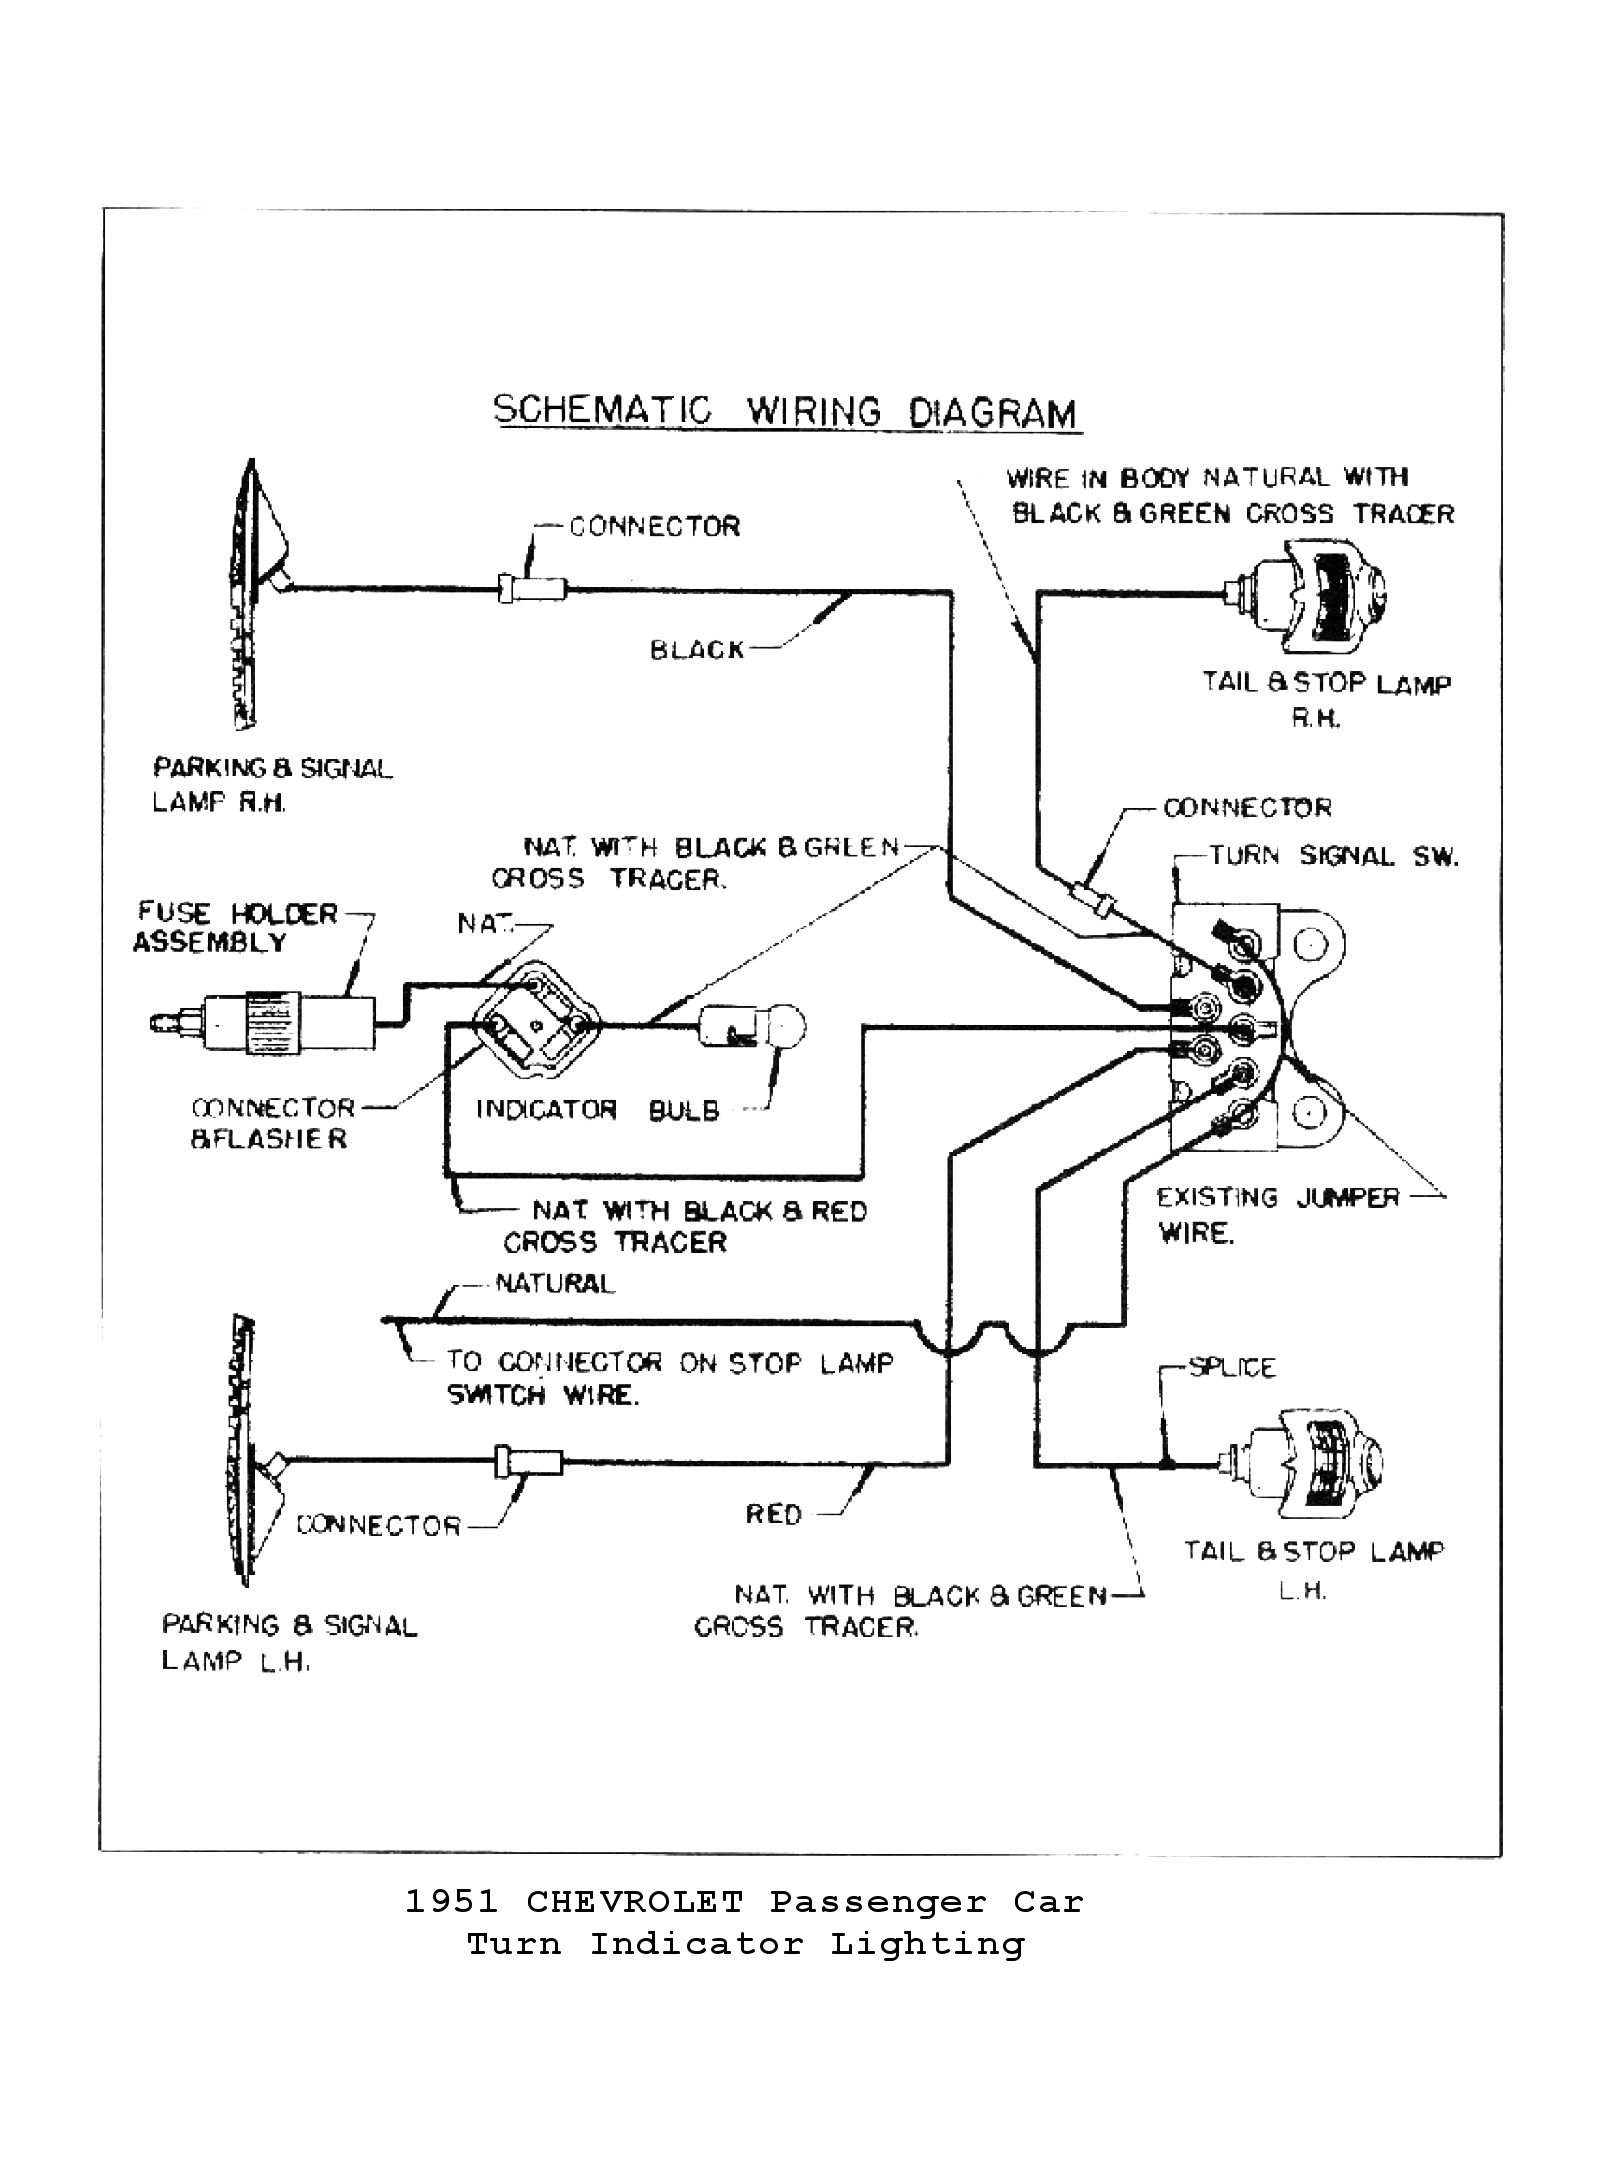 5152turnsignals chevy wiring diagrams 1954 chevy truck wiring diagram at n-0.co